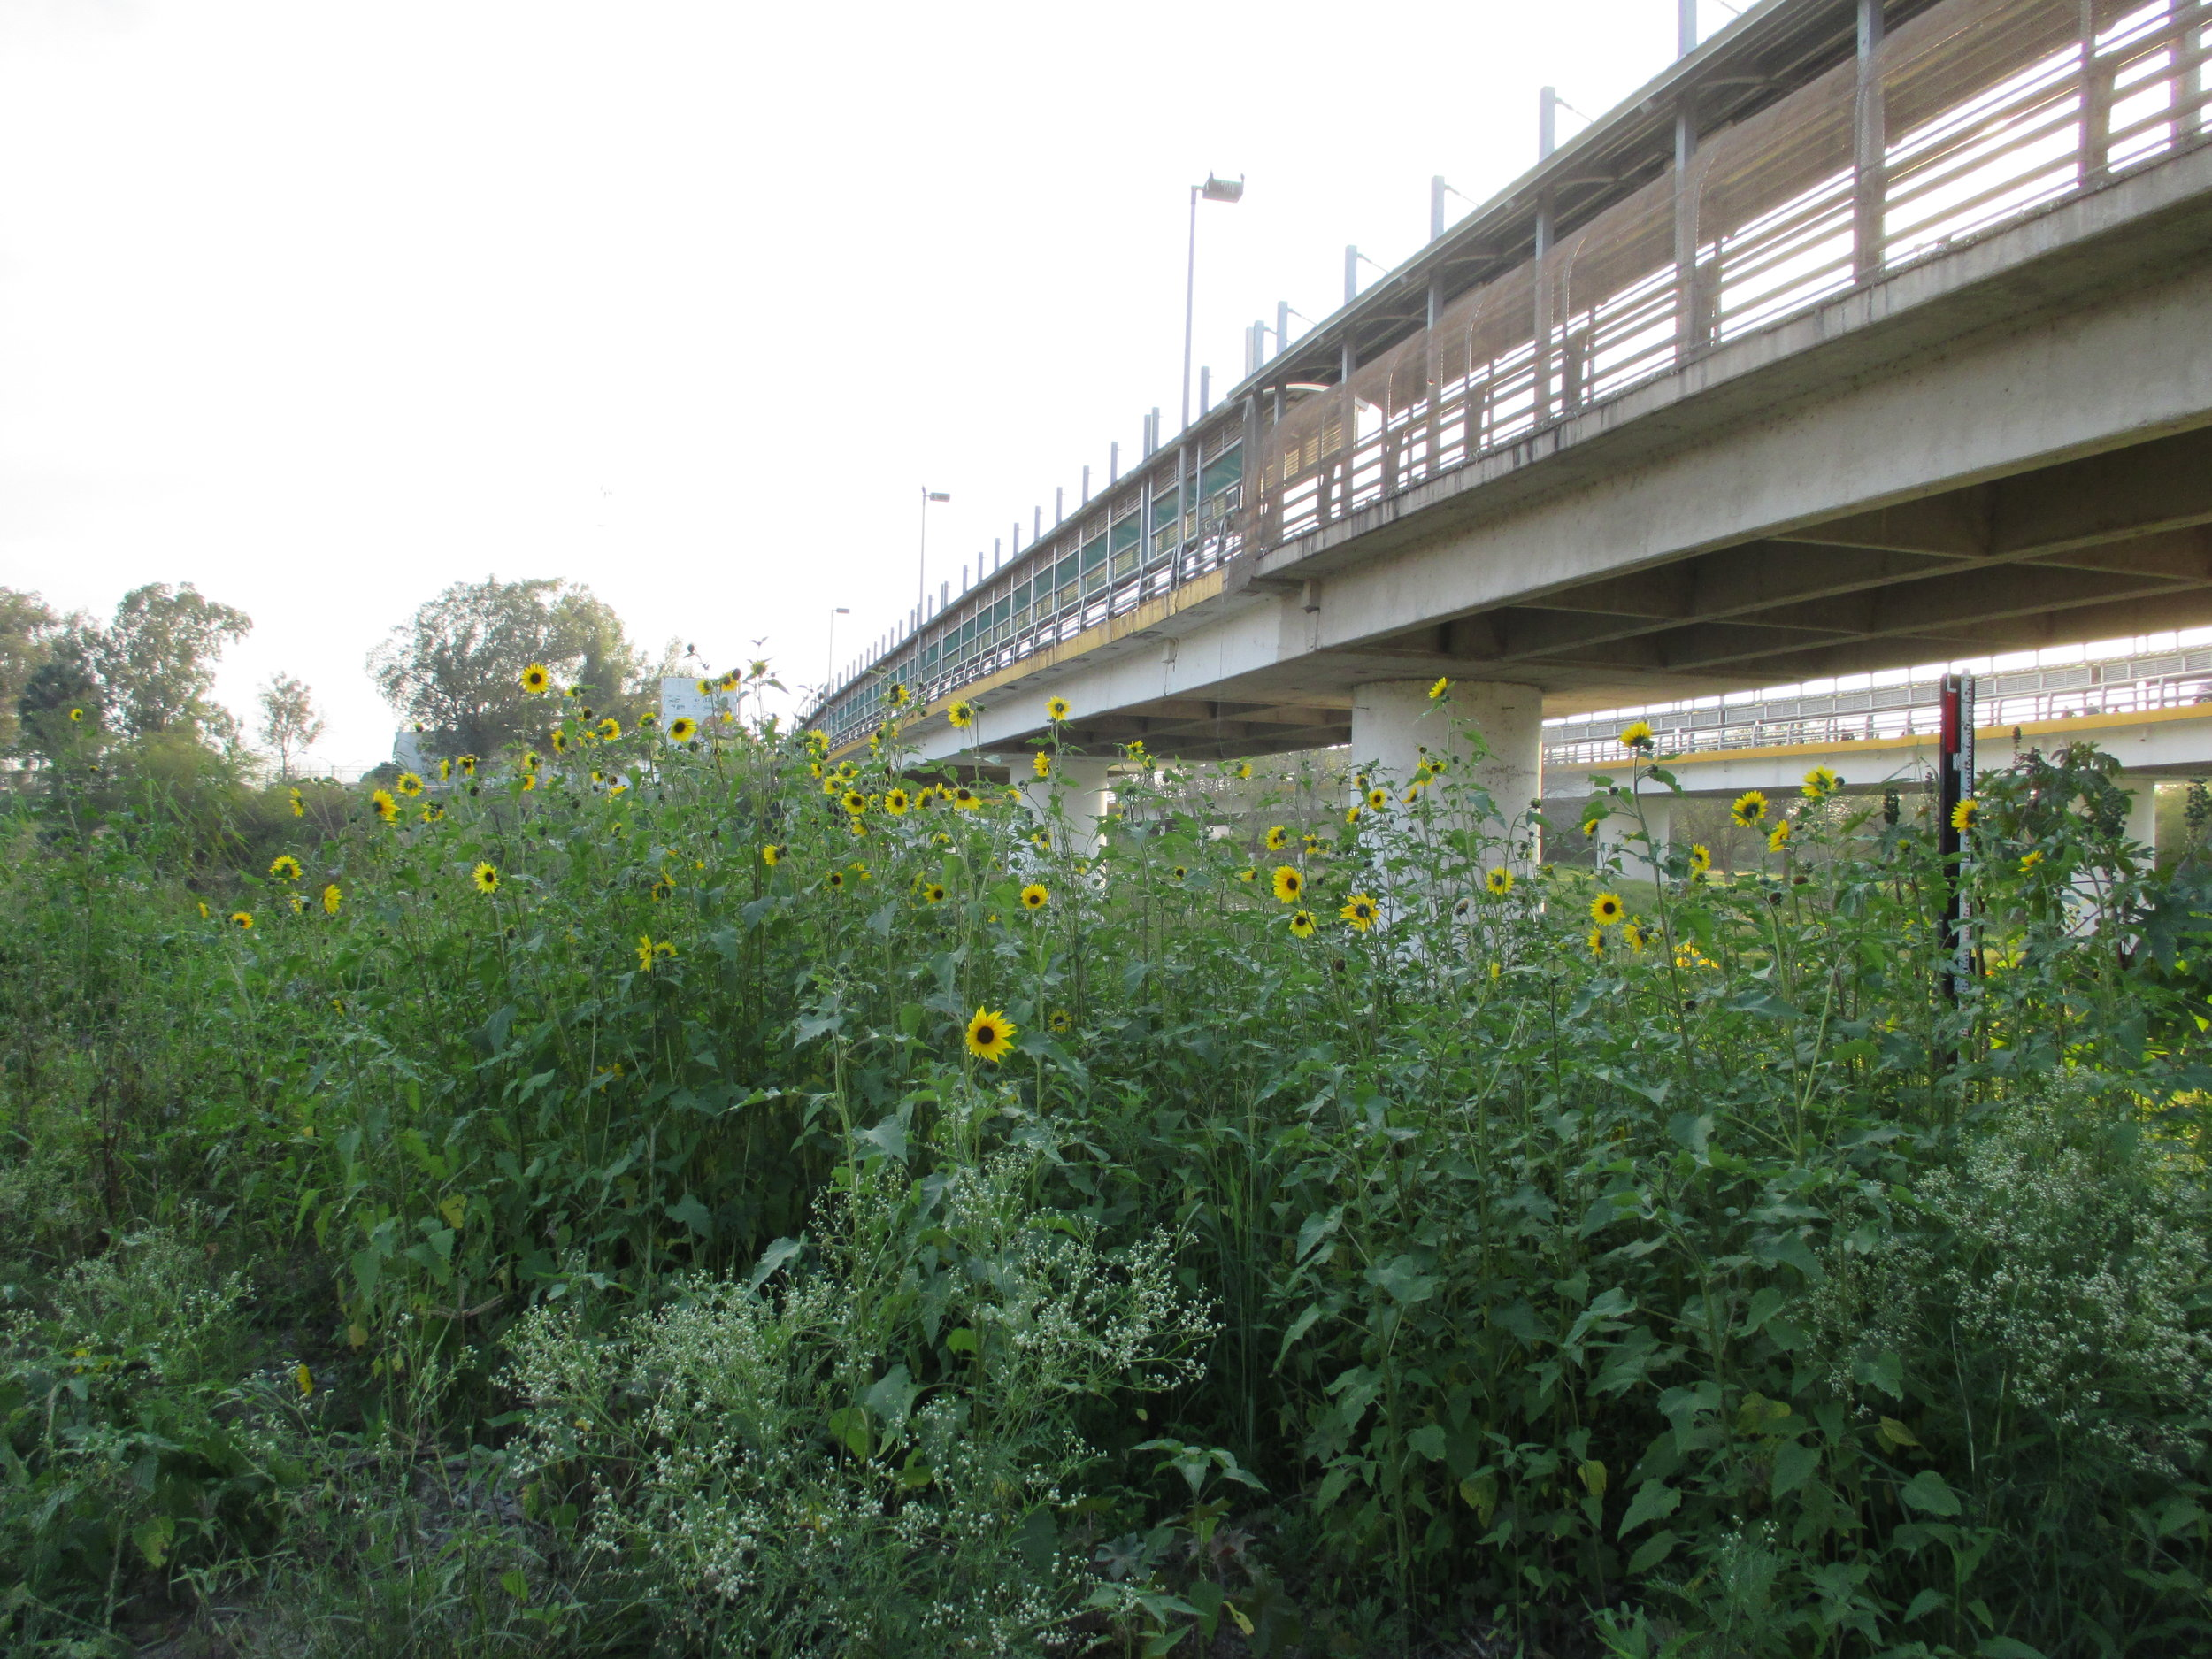 6_Brownsville sunflowers border ped bridge.jpg